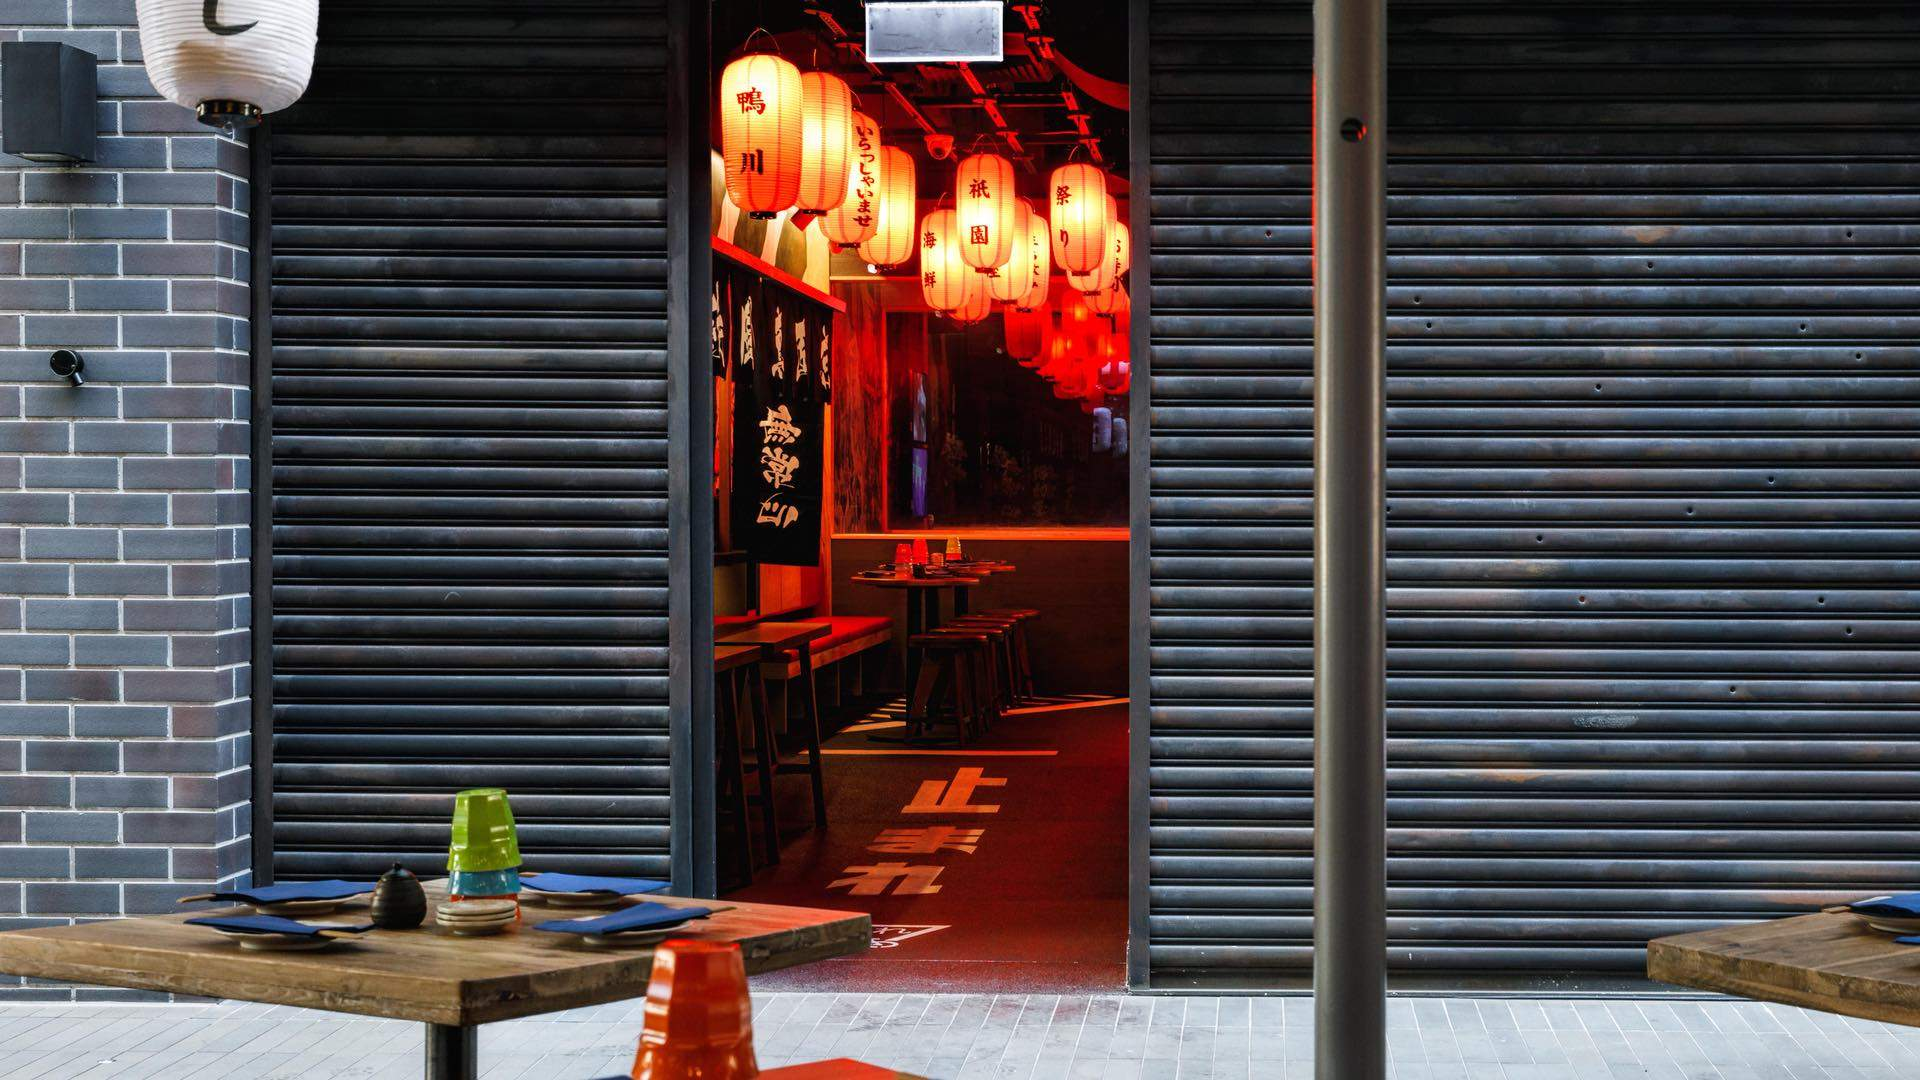 Sydney's Best Themed Bars for When You Want to Escape the Real World